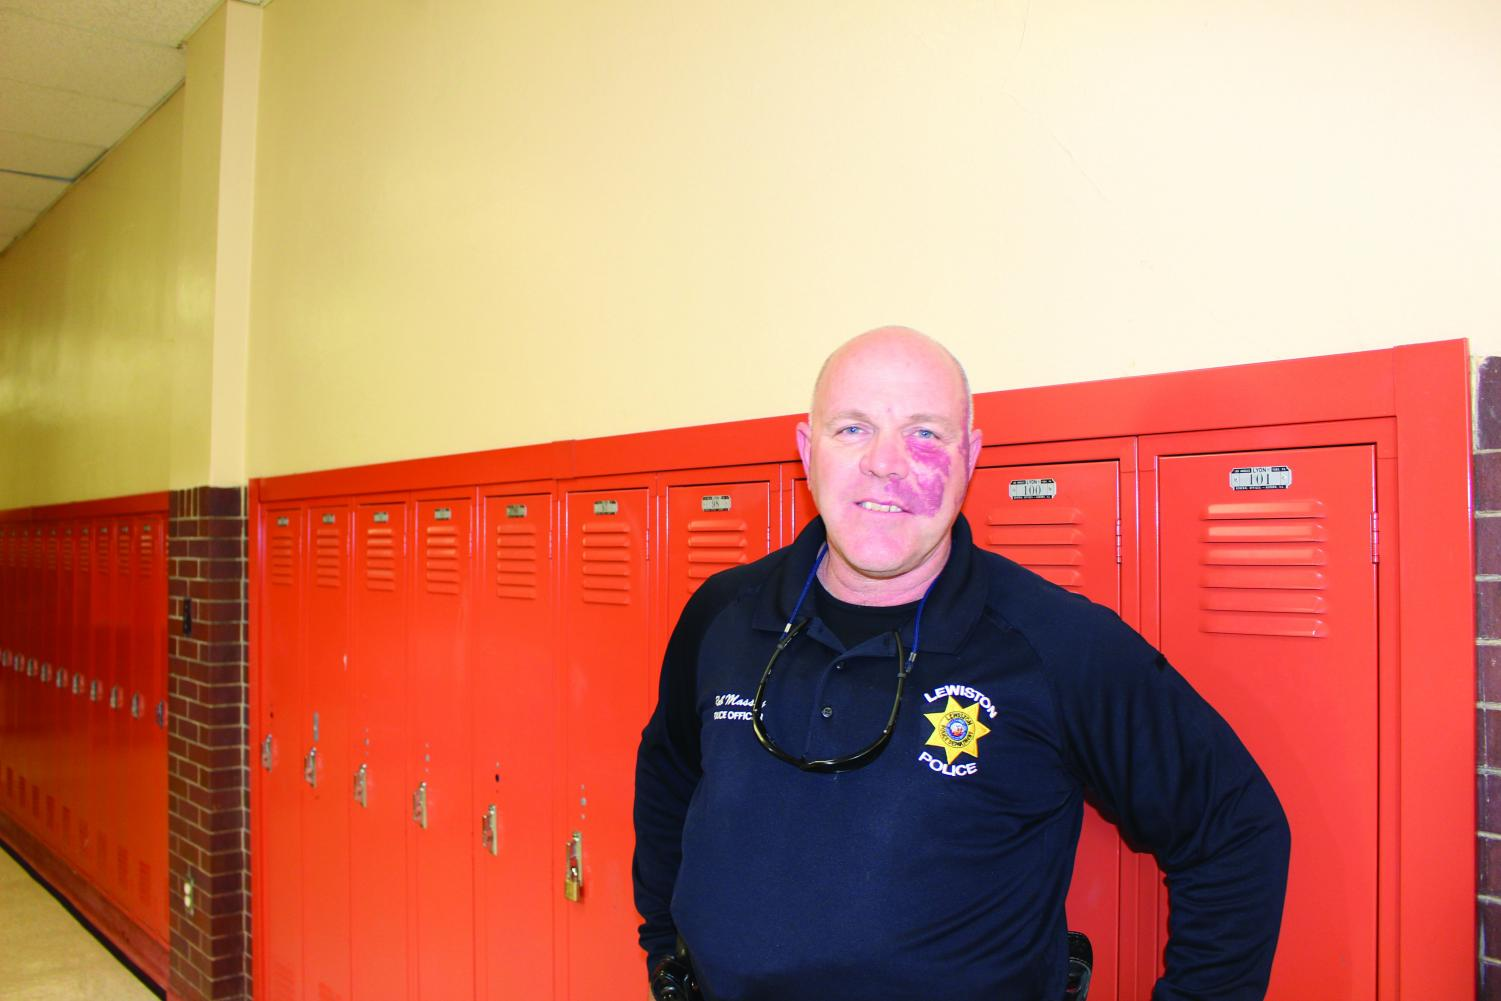 Robert Massey, LHS Student Resource Officer